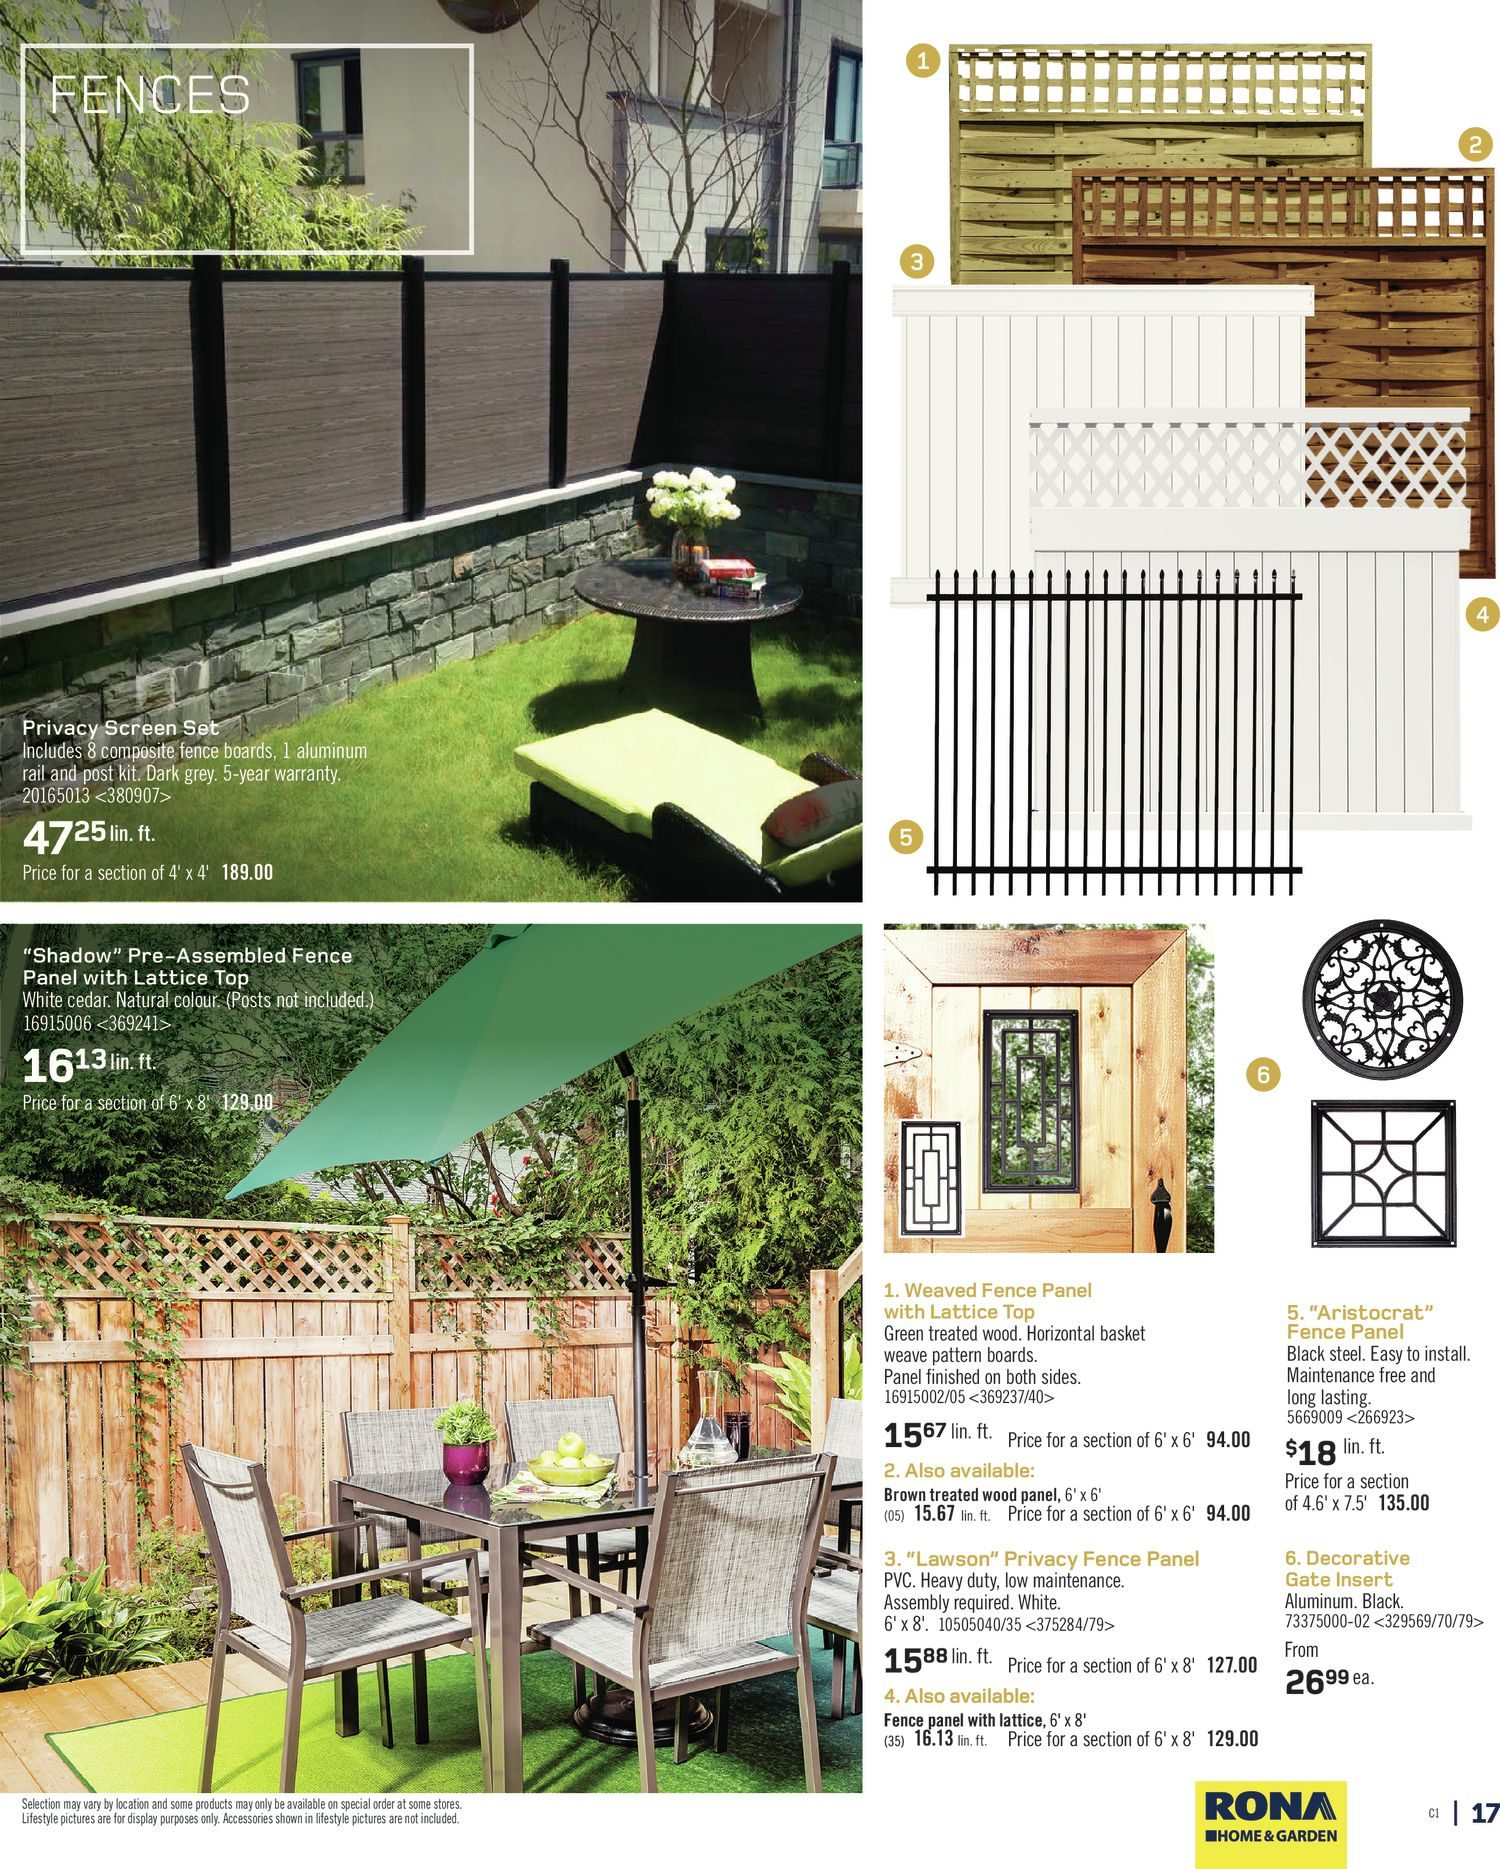 Rona weekly flyer home garden spring 2016 apr 7 13 rona weekly flyer home garden spring 2016 apr 7 13 redflagdeals baanklon Images